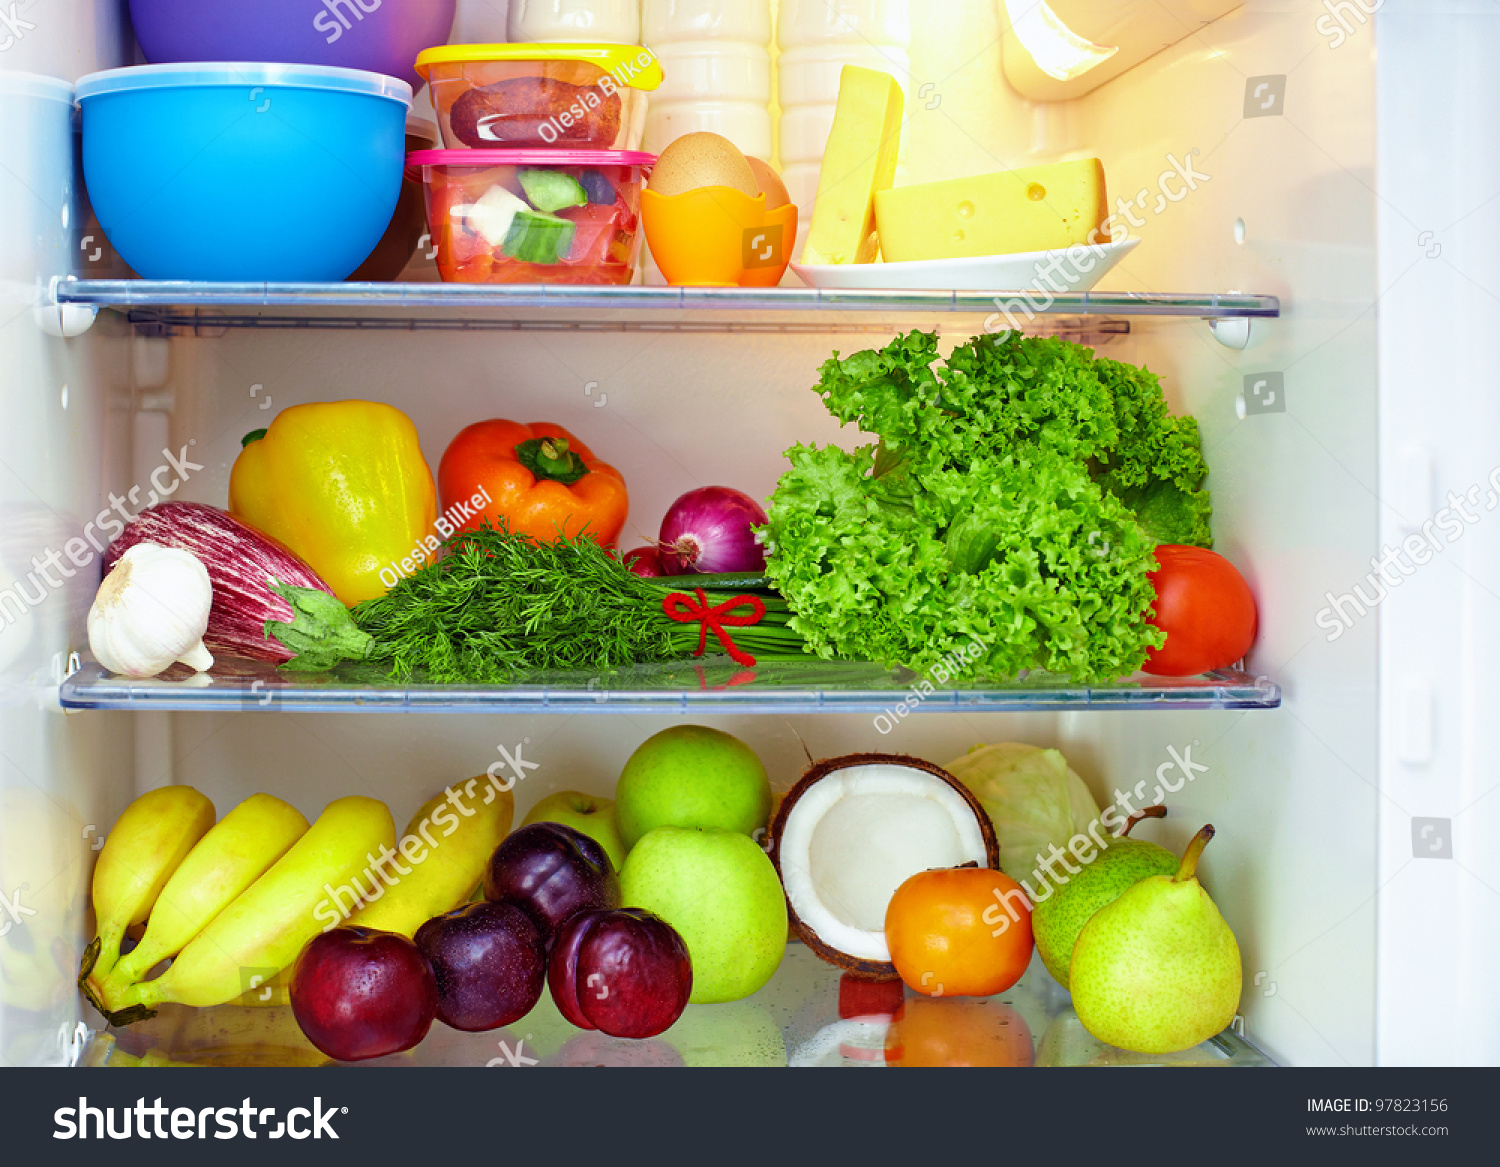 Refrigerator Full Of Healthy Food Fruits And Vegetables